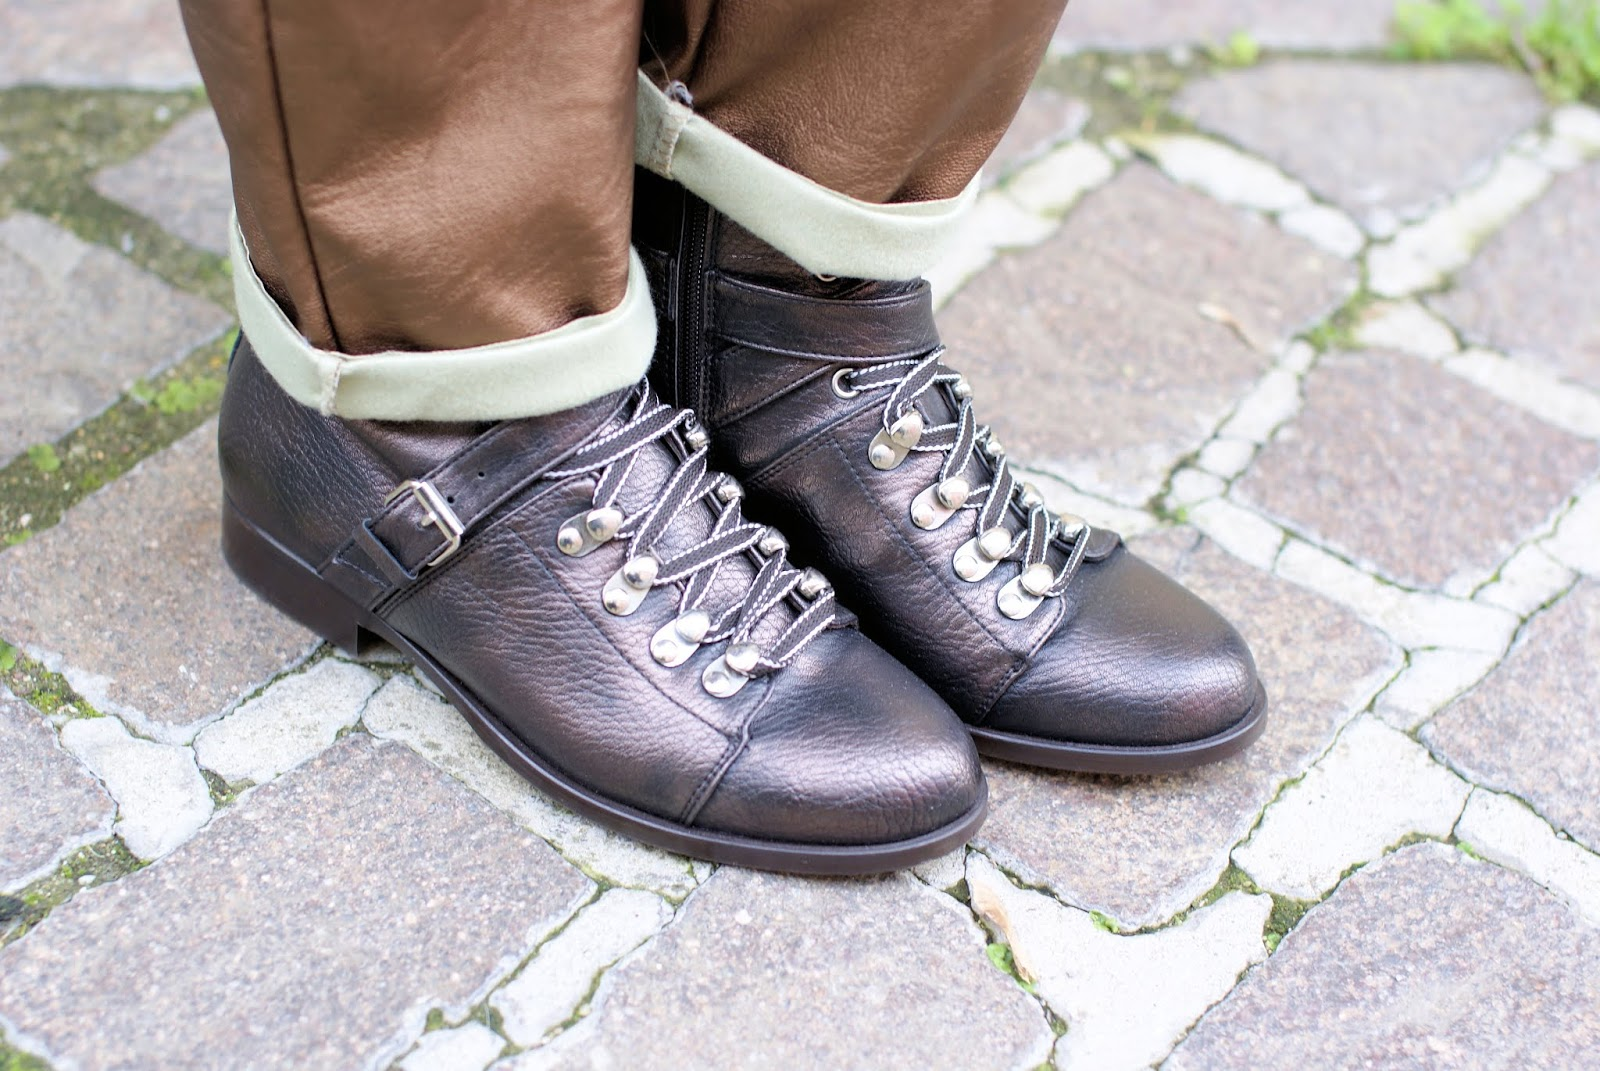 Formentini Hiking boots on Fashion and Cookies fashion blog, fashion blogger style